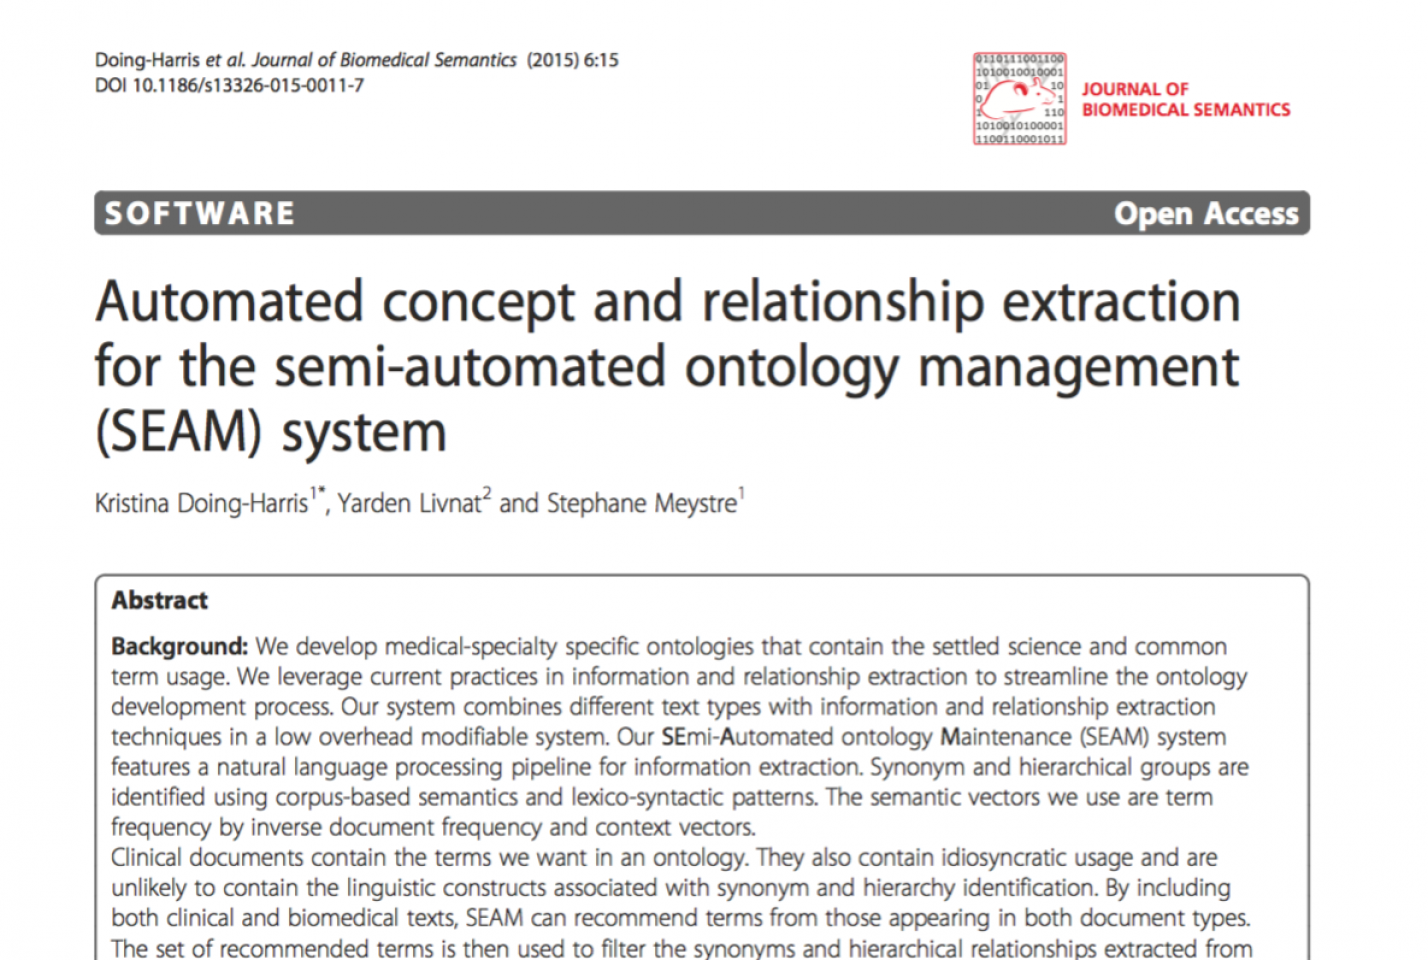 Automated concept and relationship extraction for the Semi-Automated Ontology Management (SEAM) System